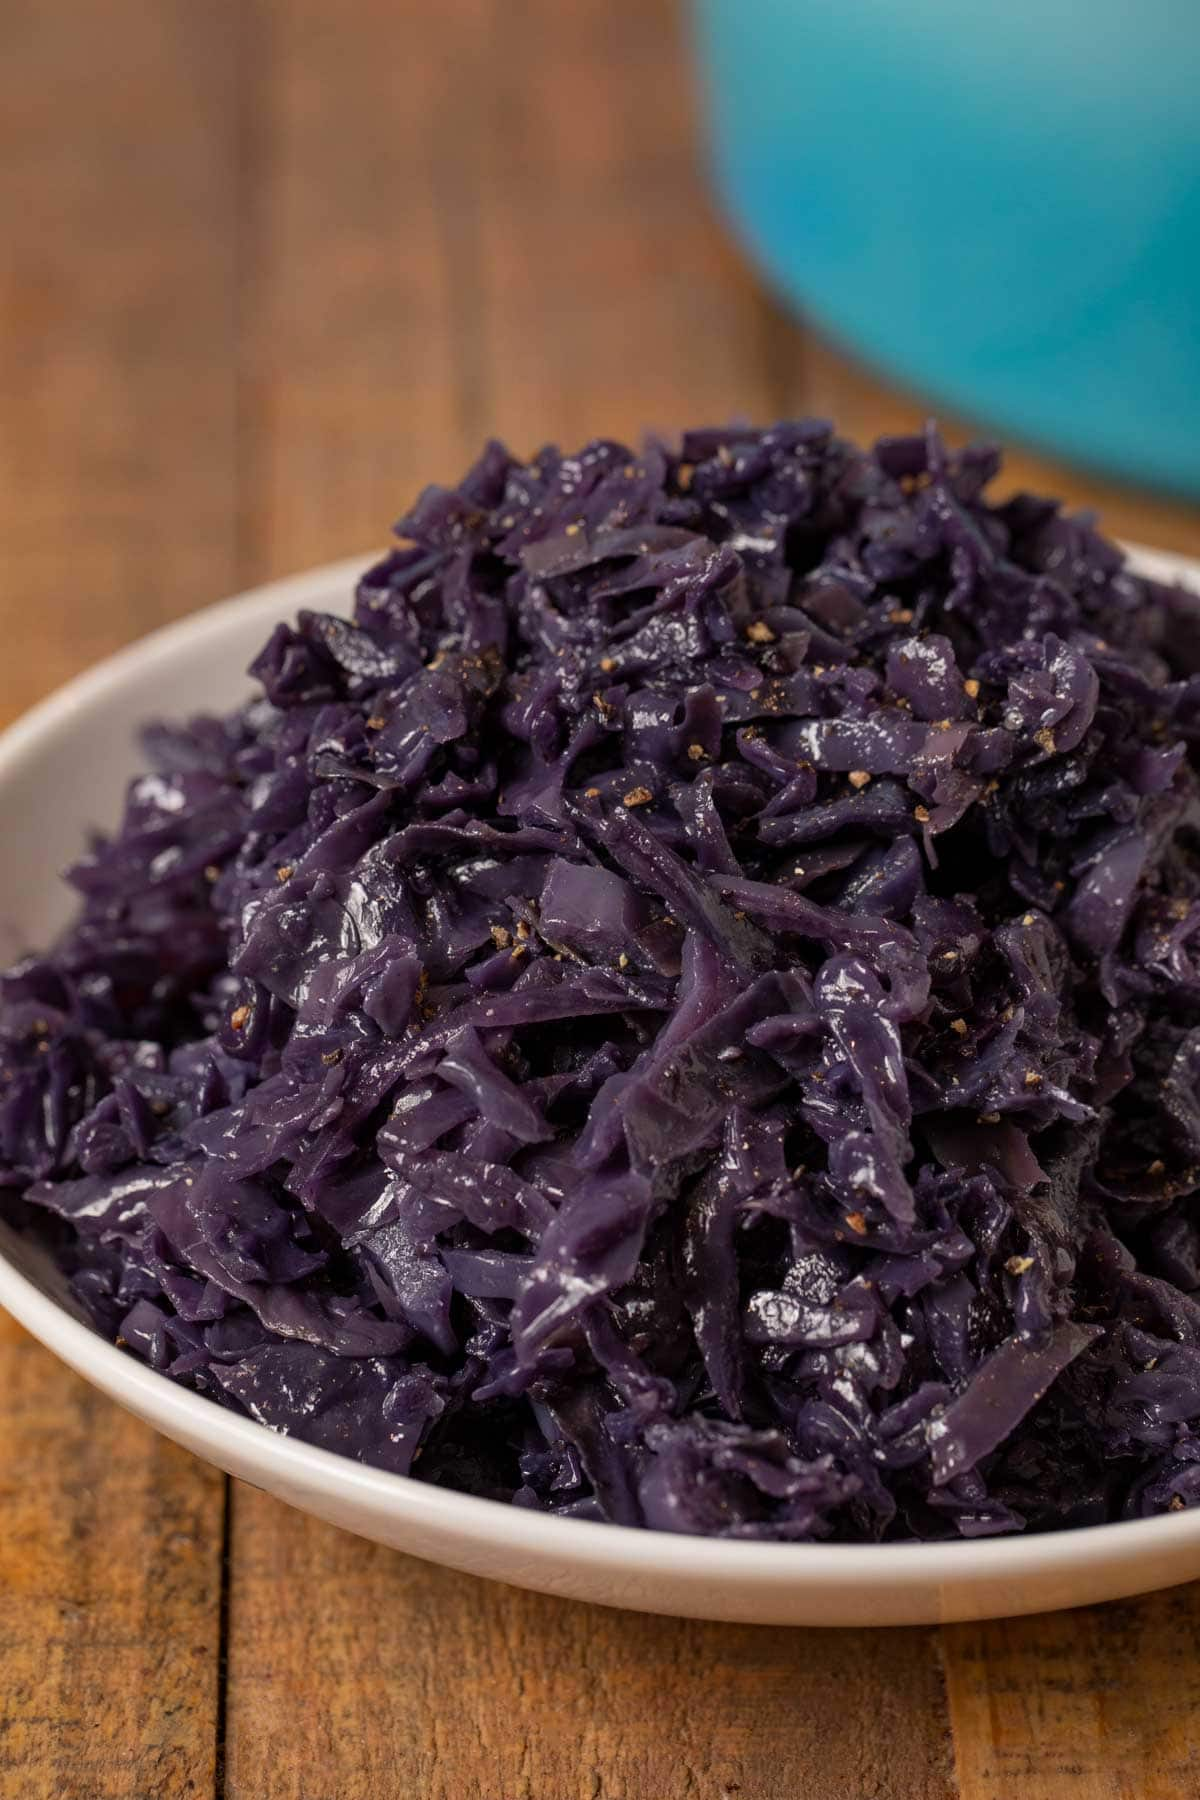 Braised Cabbage in bowl